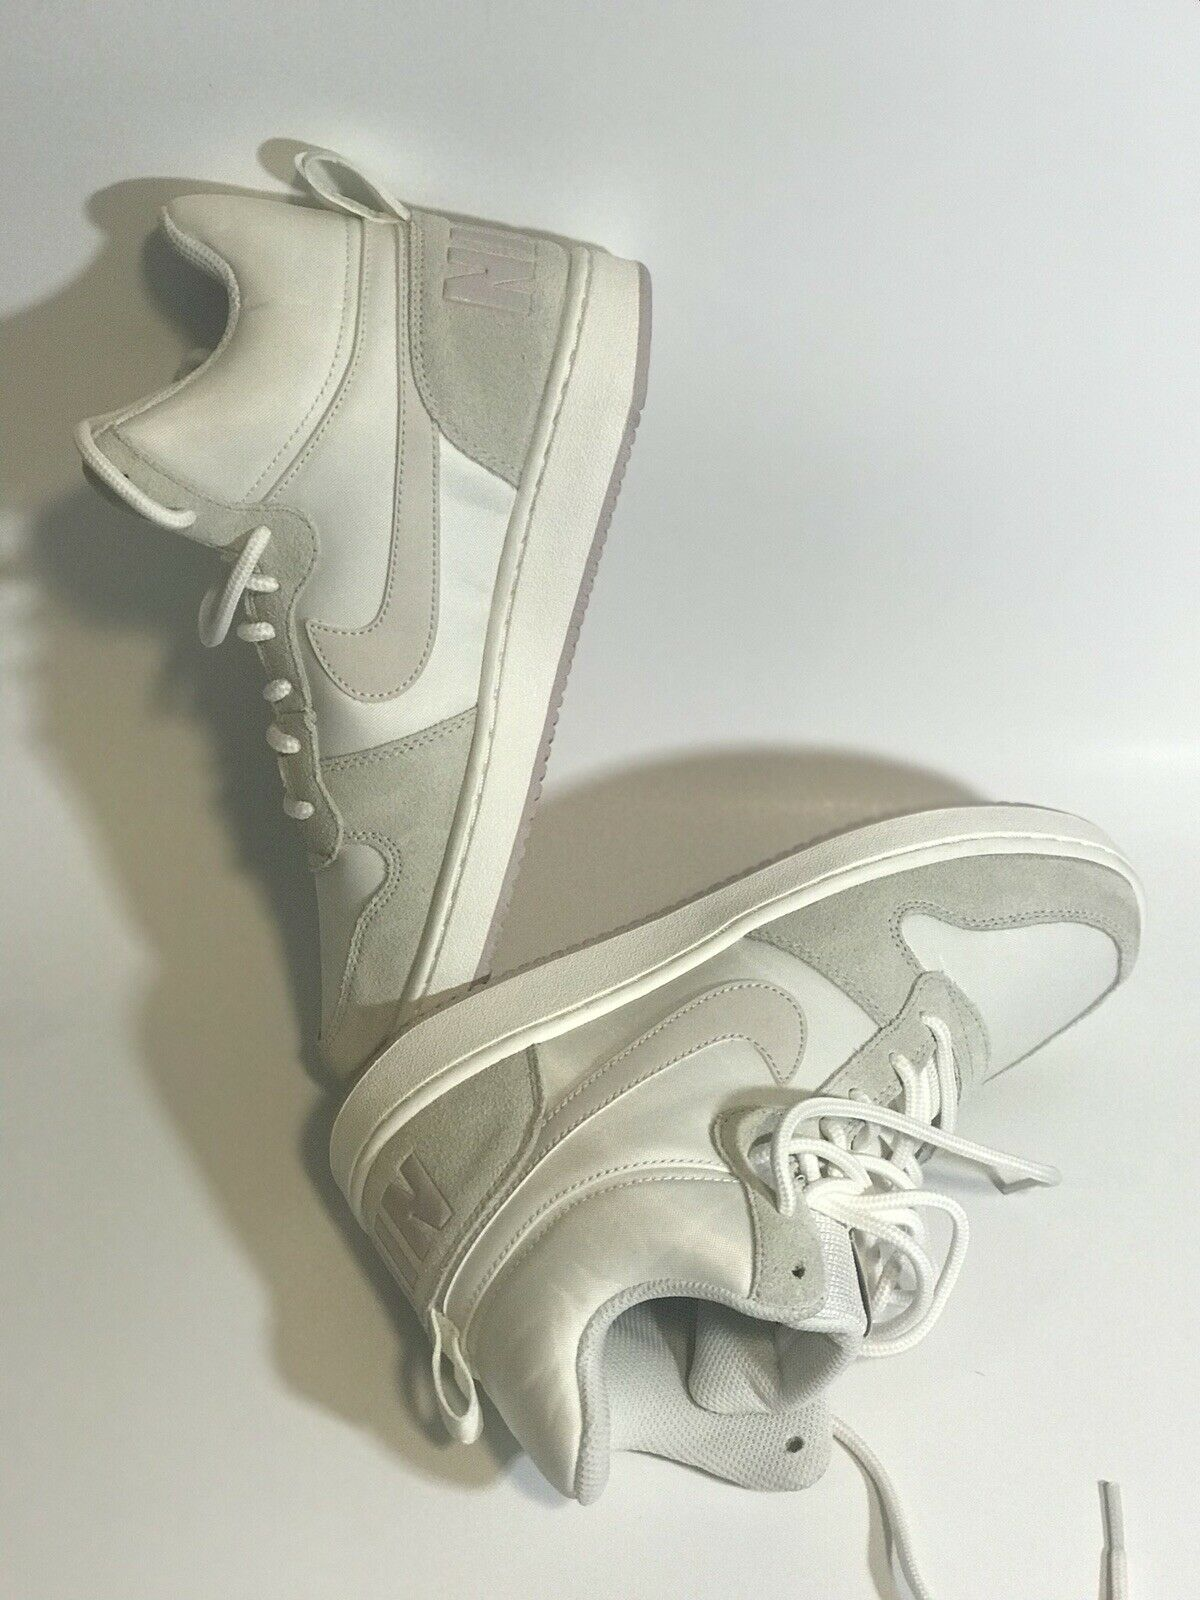 Nike woman shoes size 8 new